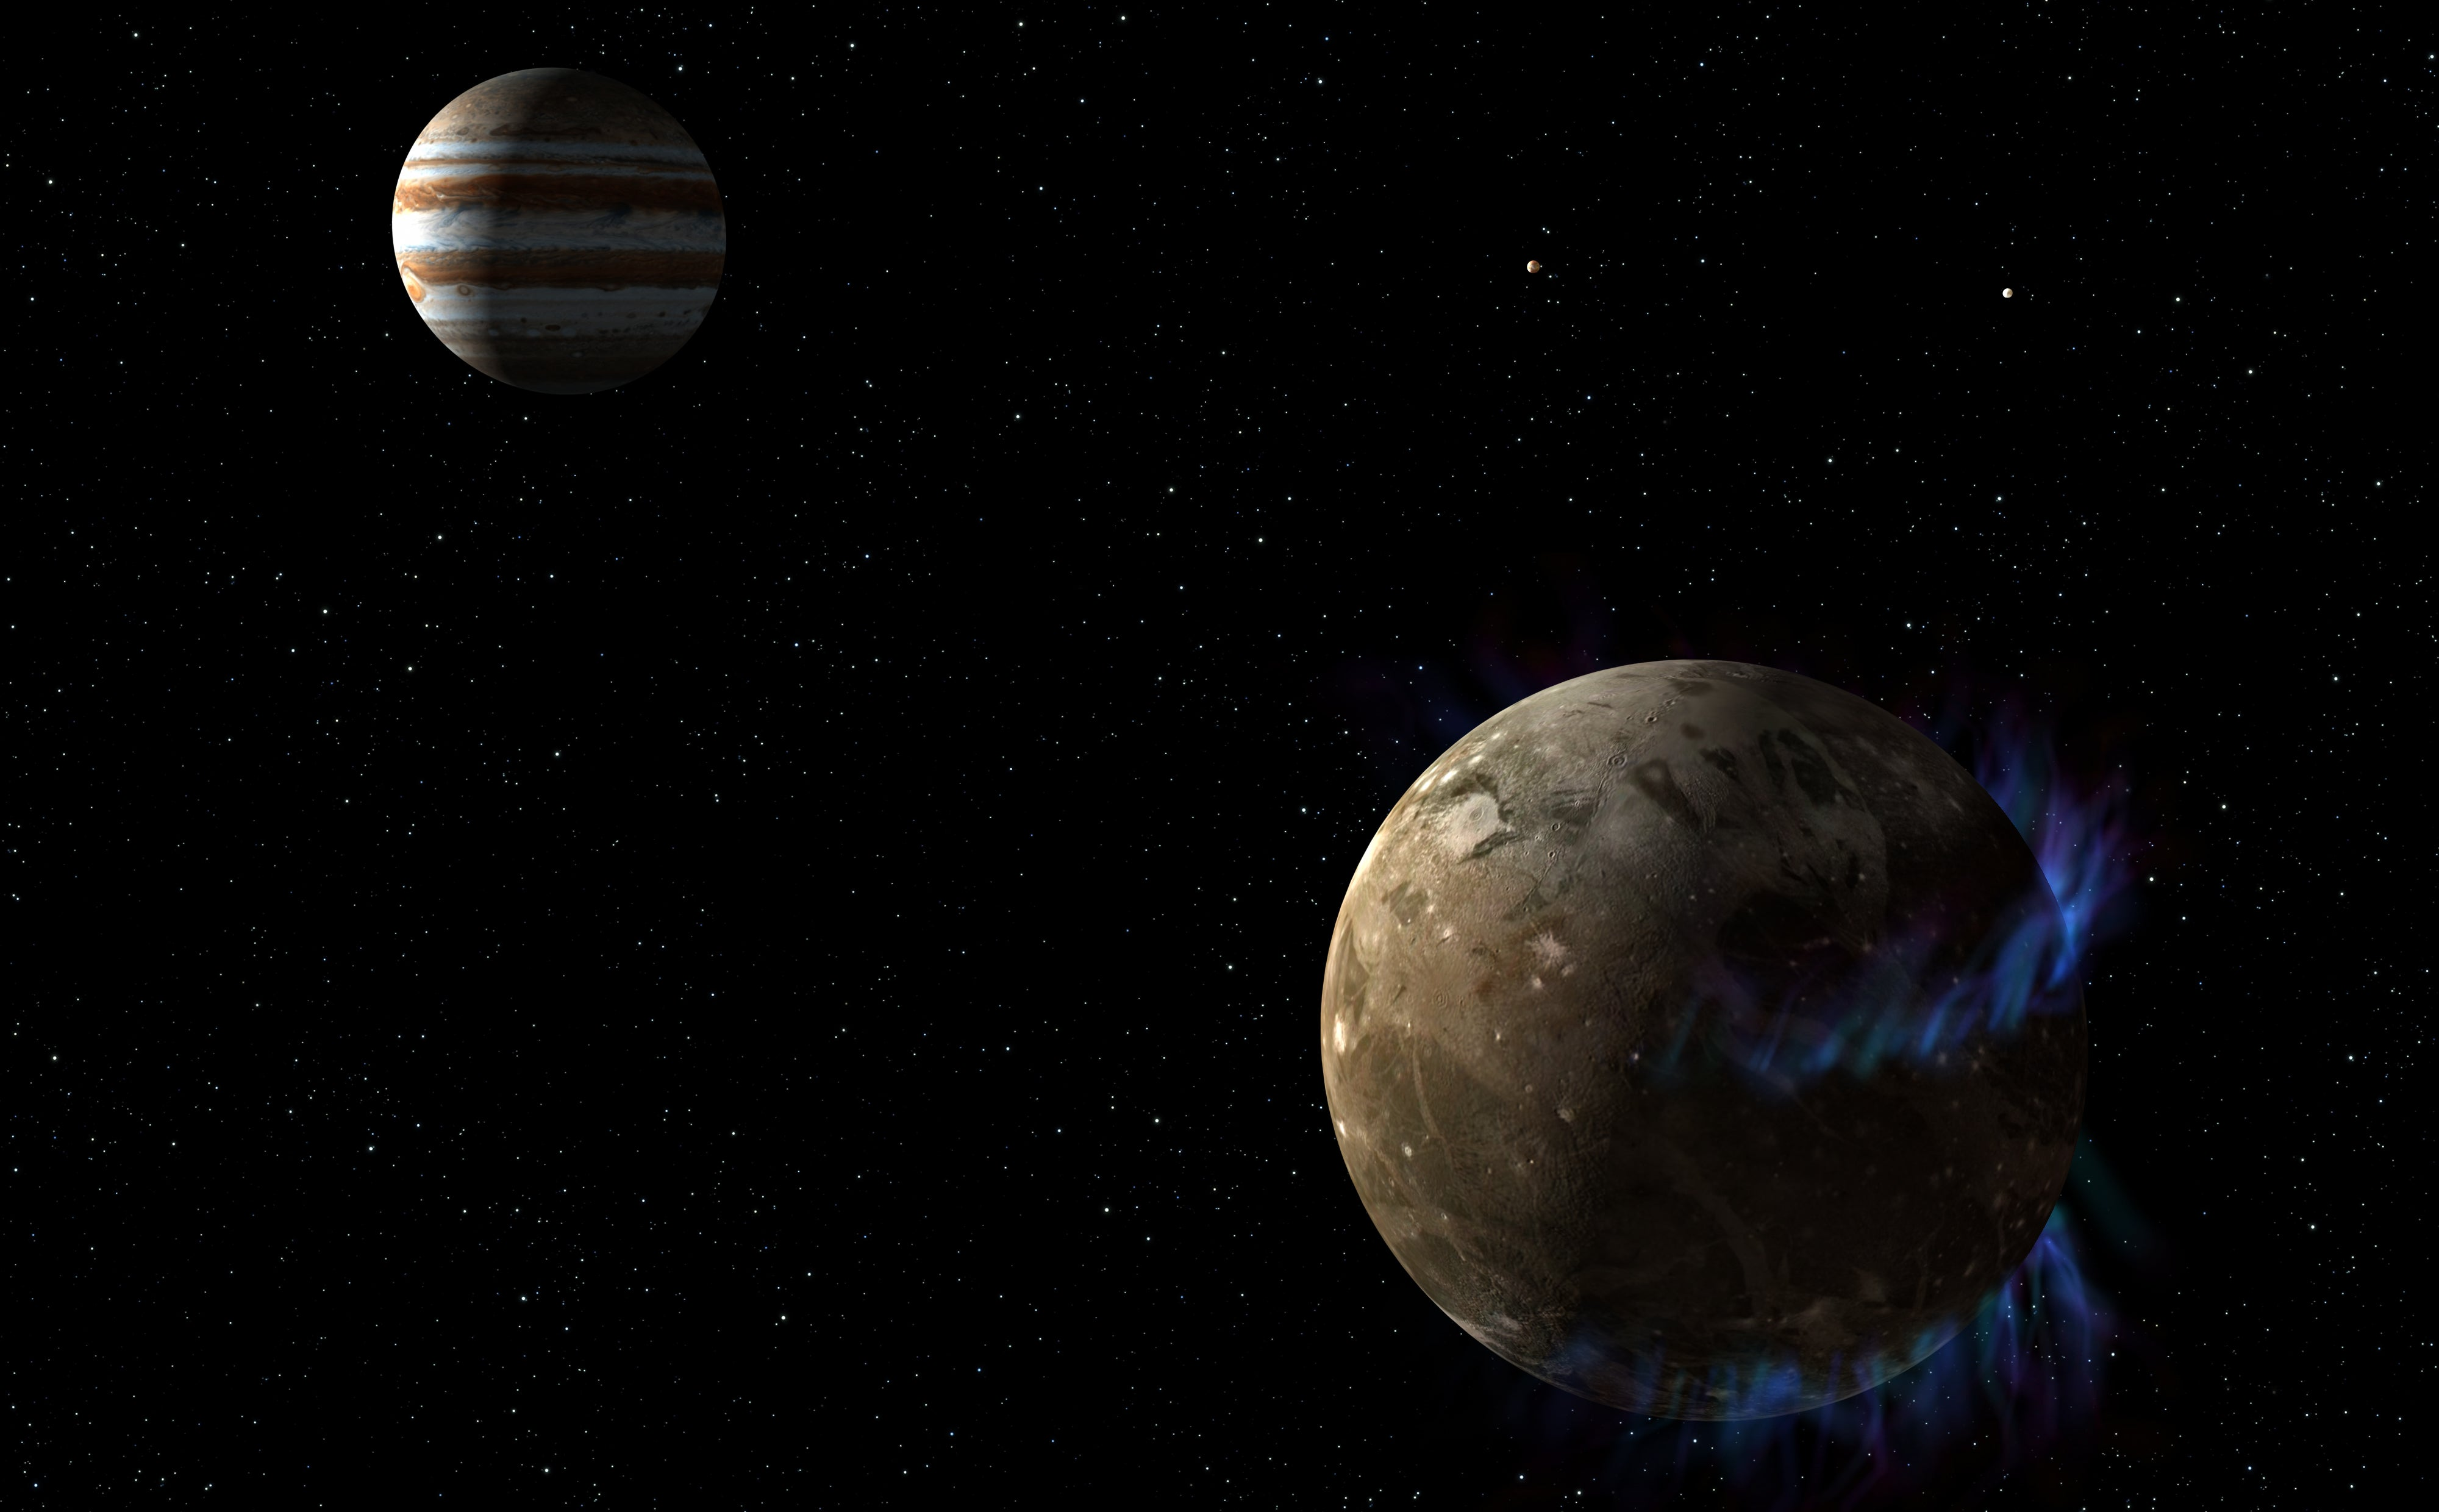 Forgotten Data From 1996 Sheds New Light On Jupiter's Mysterious Moon Ganymede